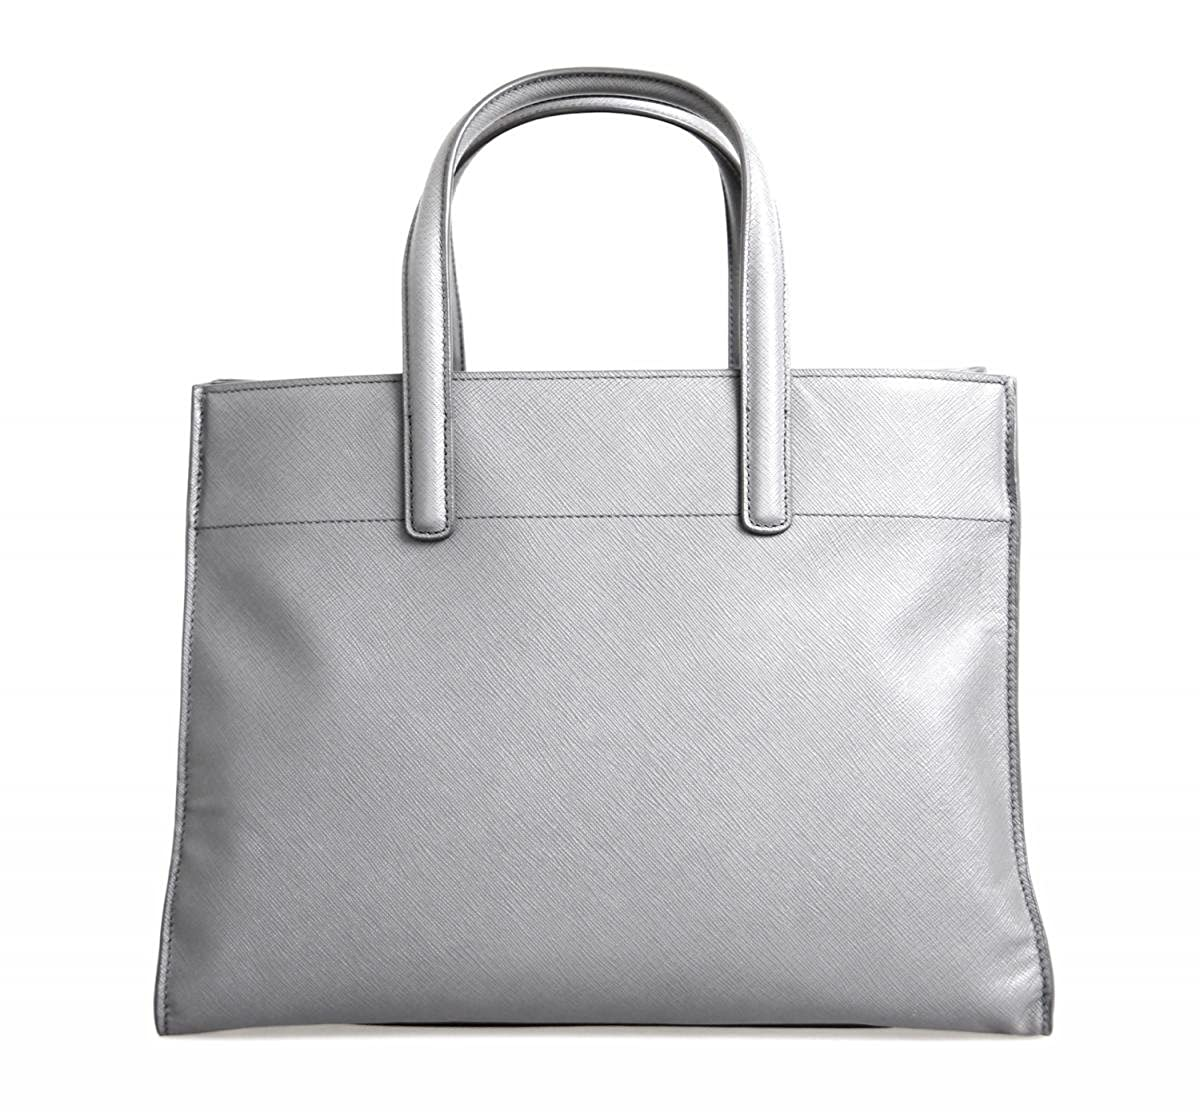 Prada Women s BN2603 Grey Saffiano Leather Shoulder Bag  Handbags   Amazon.com 5fd0c3821cbfc